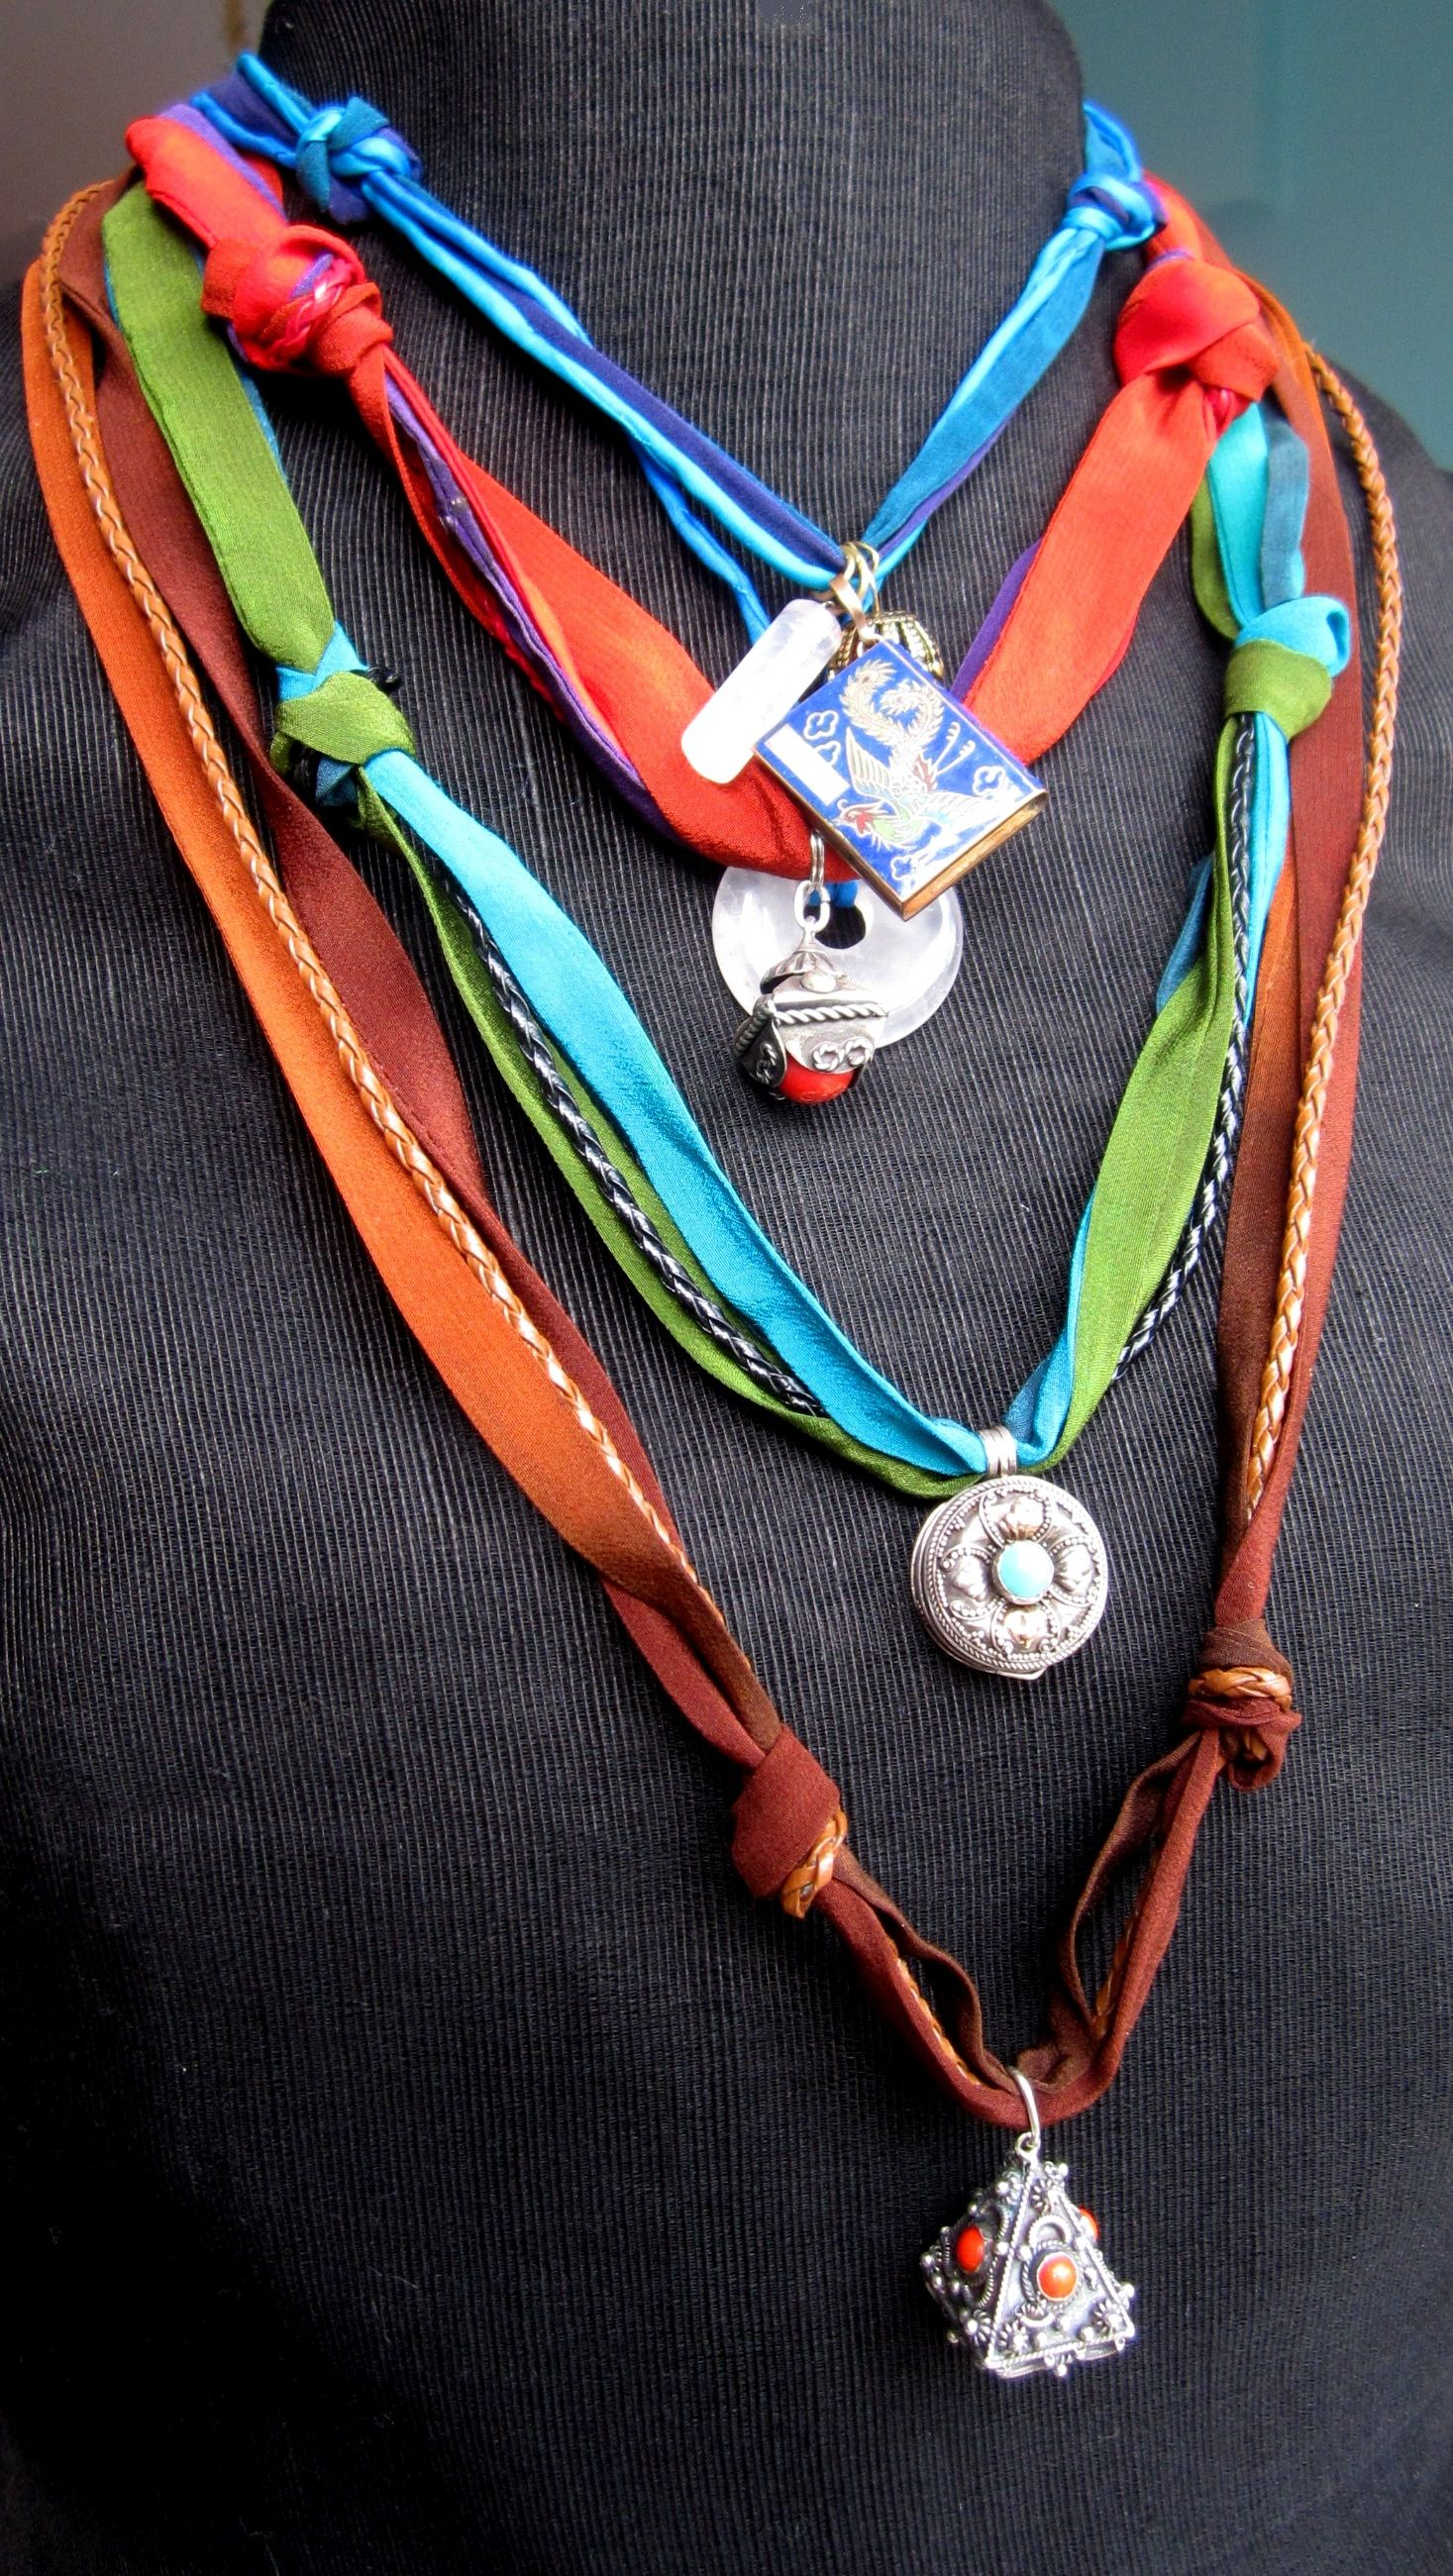 Dyed Silks and leather necklaces,with antique pendants